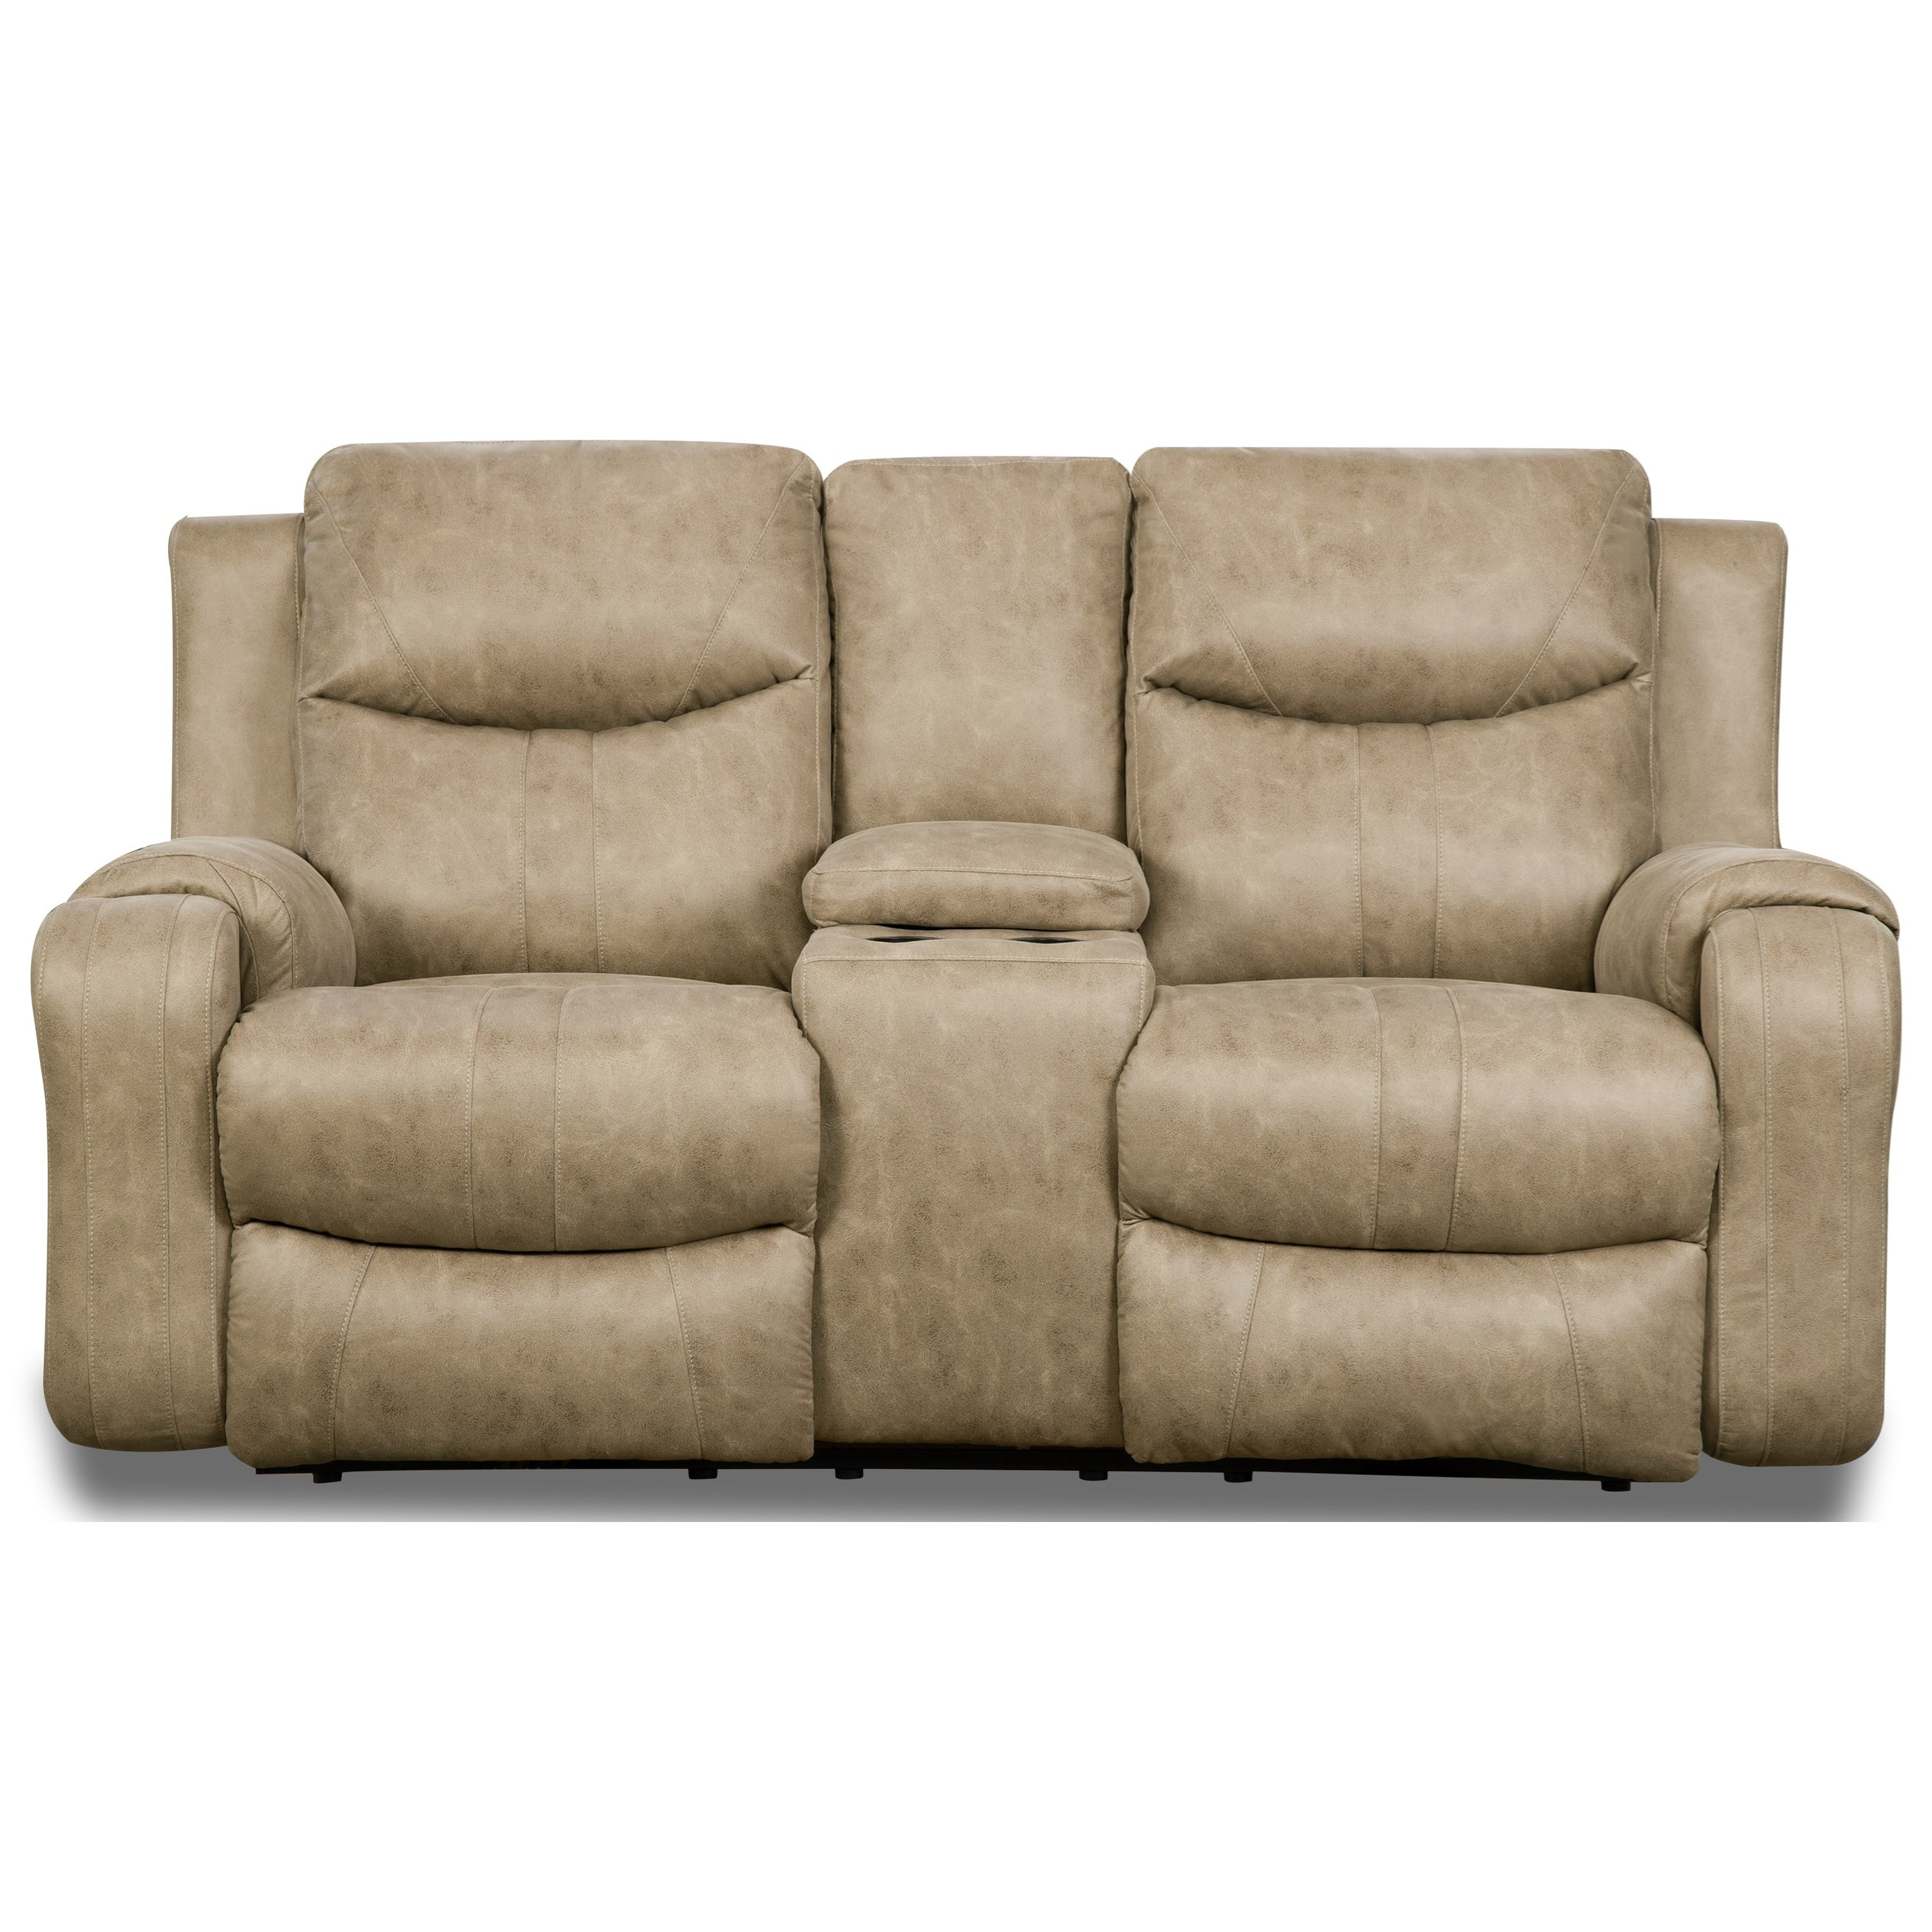 Marvel Reclining Sofa with Console & Power Headrest by Southern Motion at Darvin Furniture